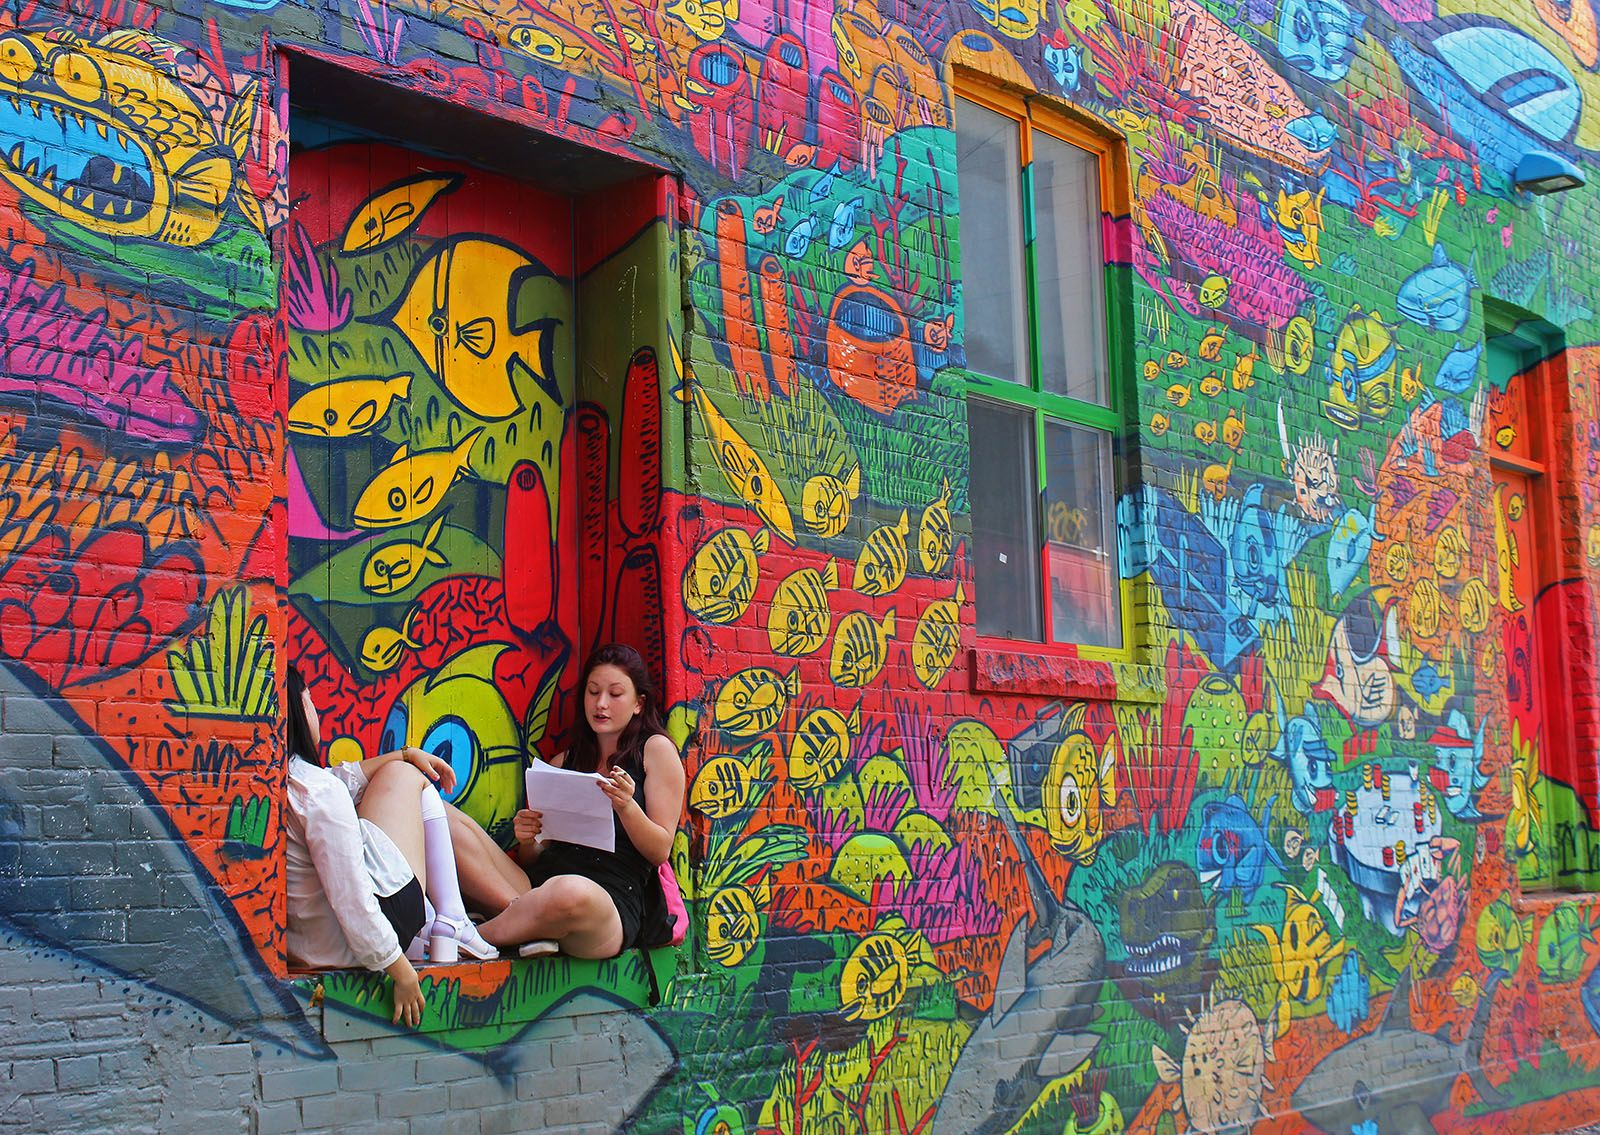 Discovering toronto street art in graffiti alley with tour guys a free tour for the summer of 2015 amazing street art murals and graffiti in the city